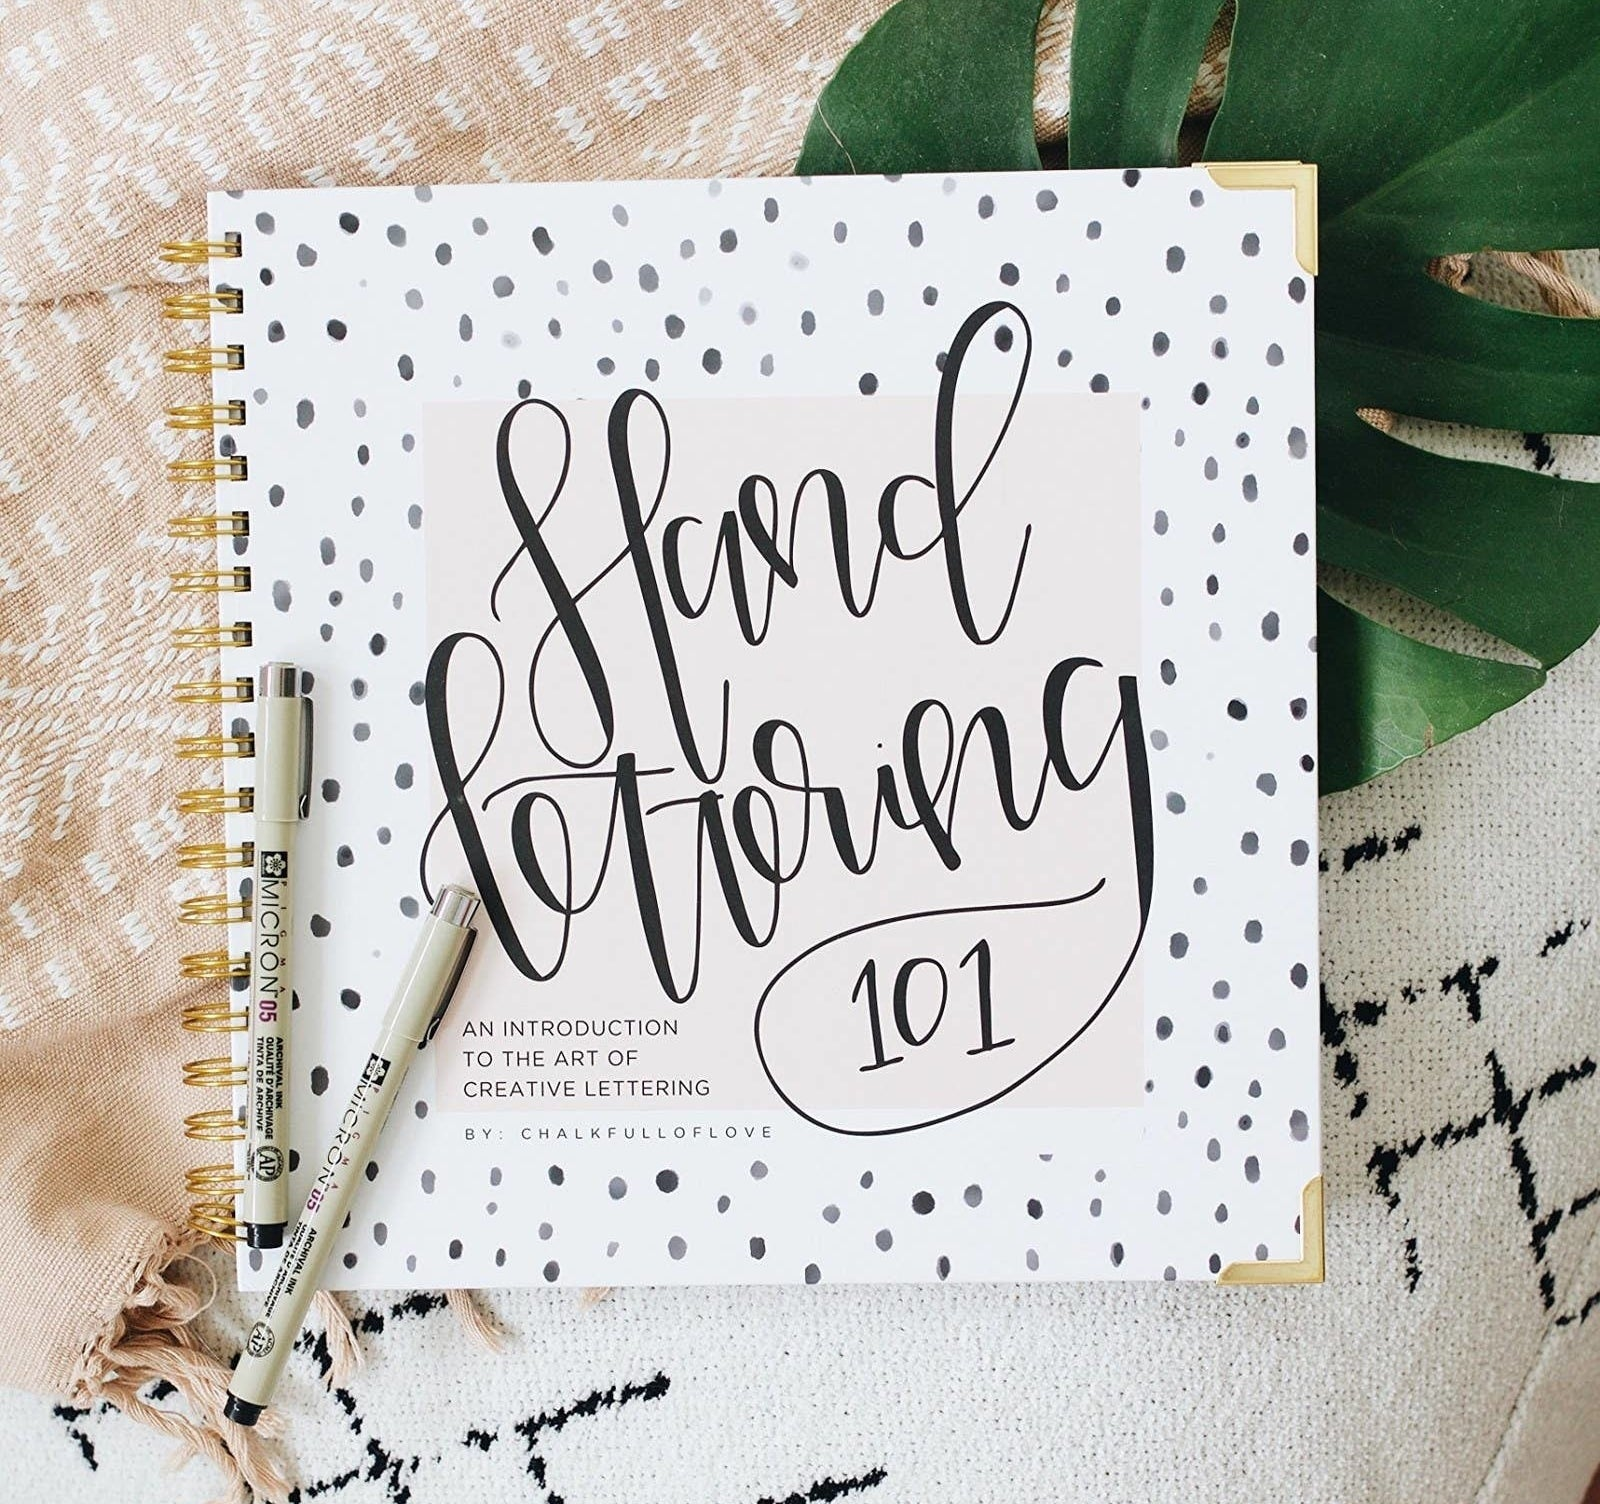 A book titled Hand Lettering 101